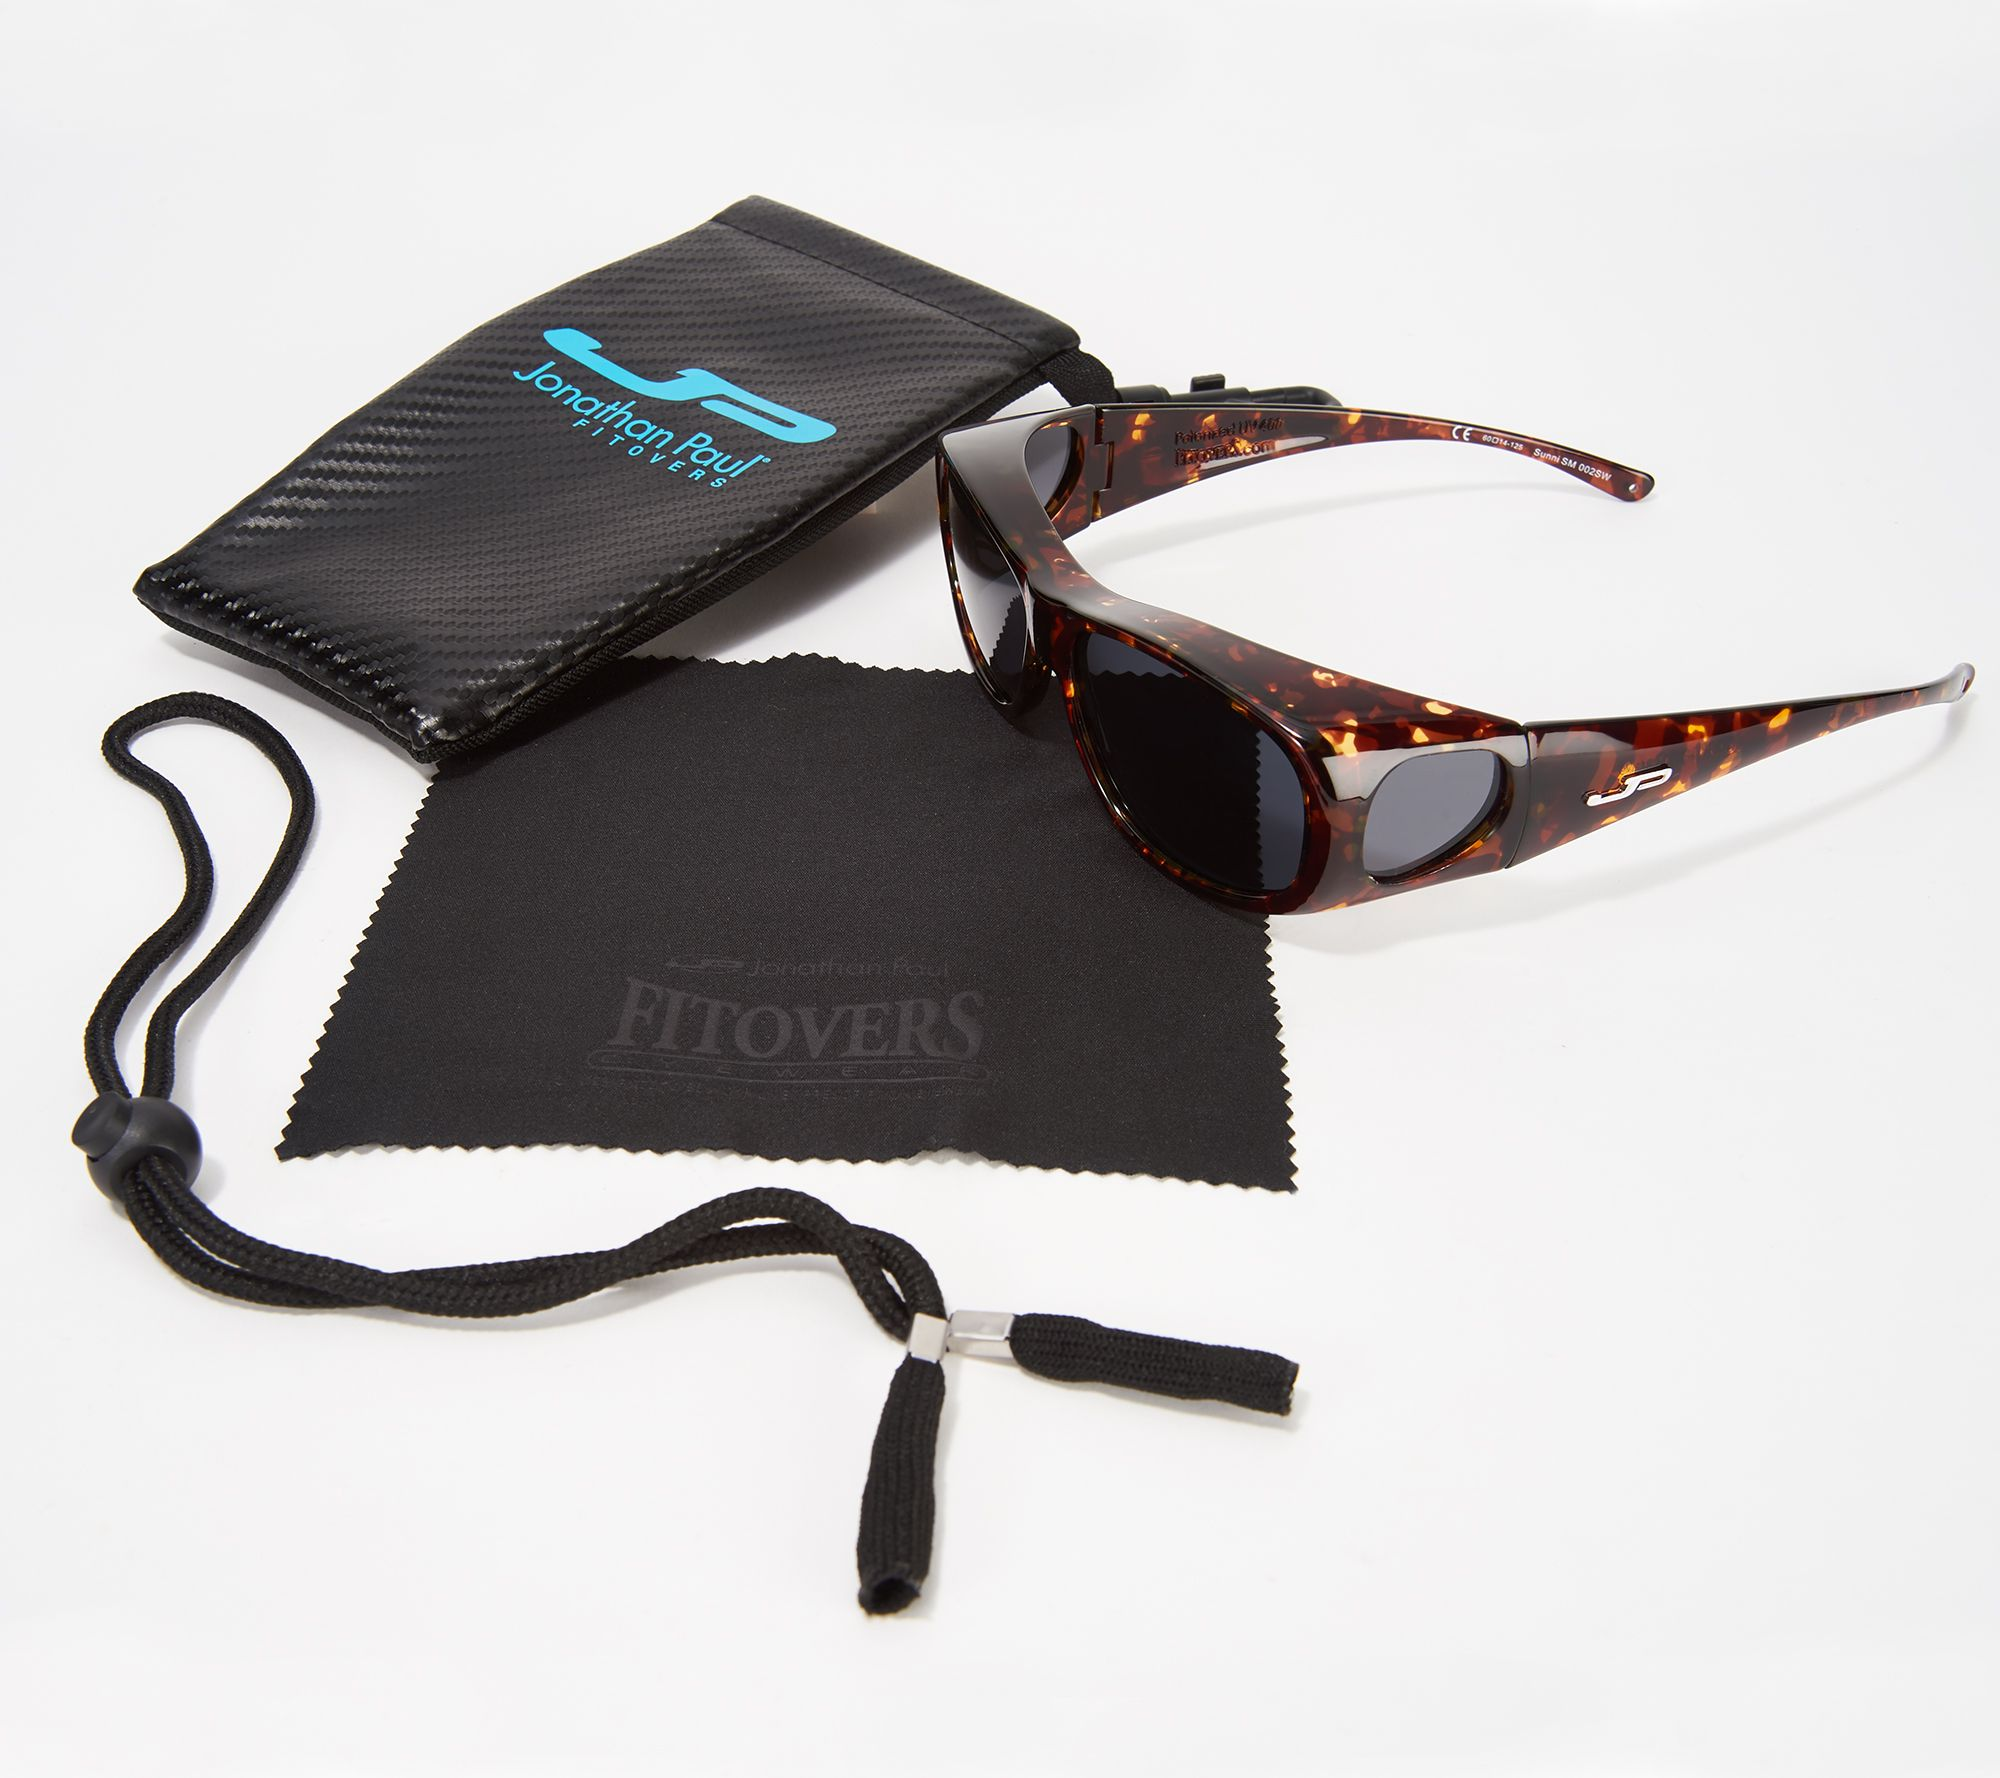 9907ec79d0c Jonathan Paul Sunni Classic Fitover Sunglasses with Case - Page 1 ...